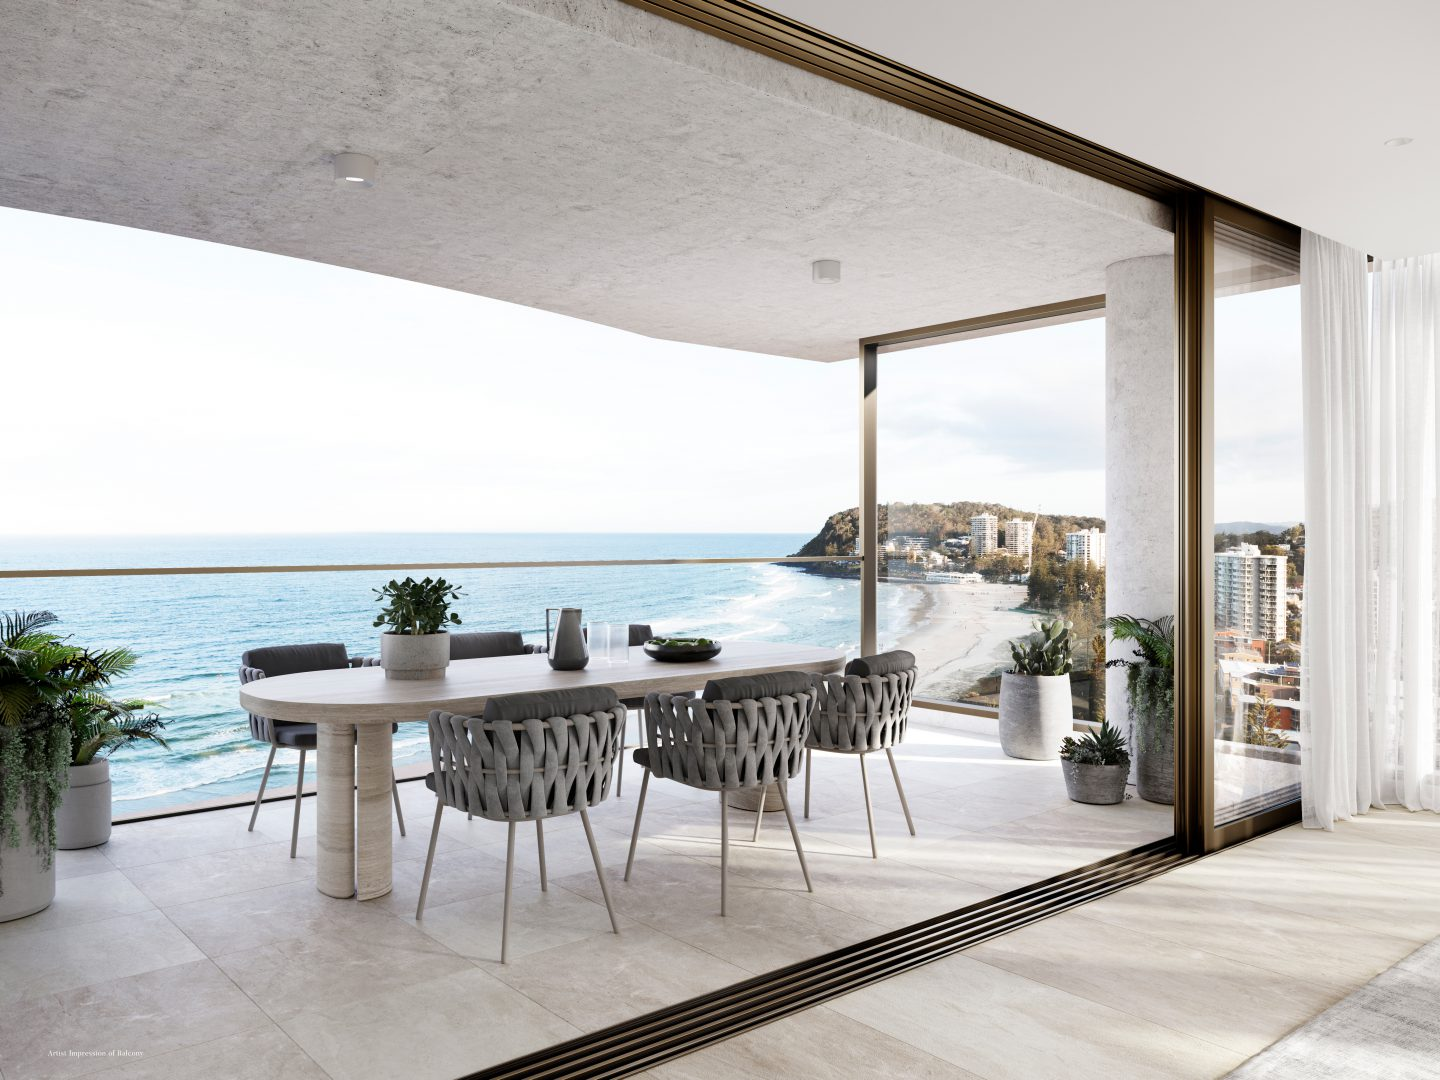 Natura Balcony and View (render supplied by the developer)